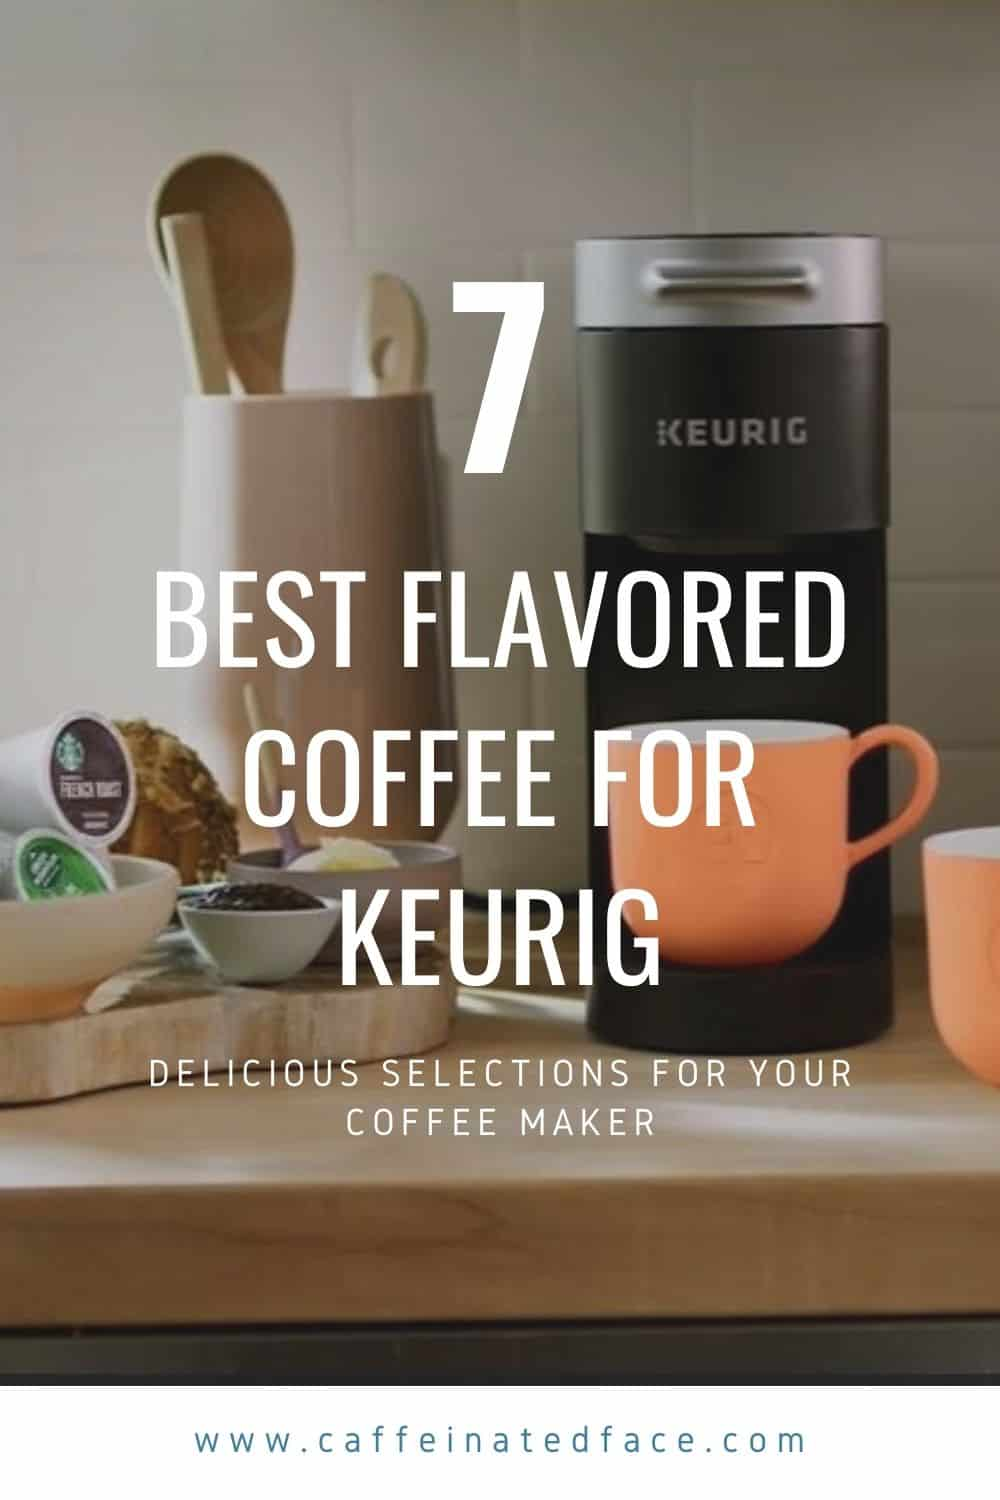 best flavored coffee for keurig (2)